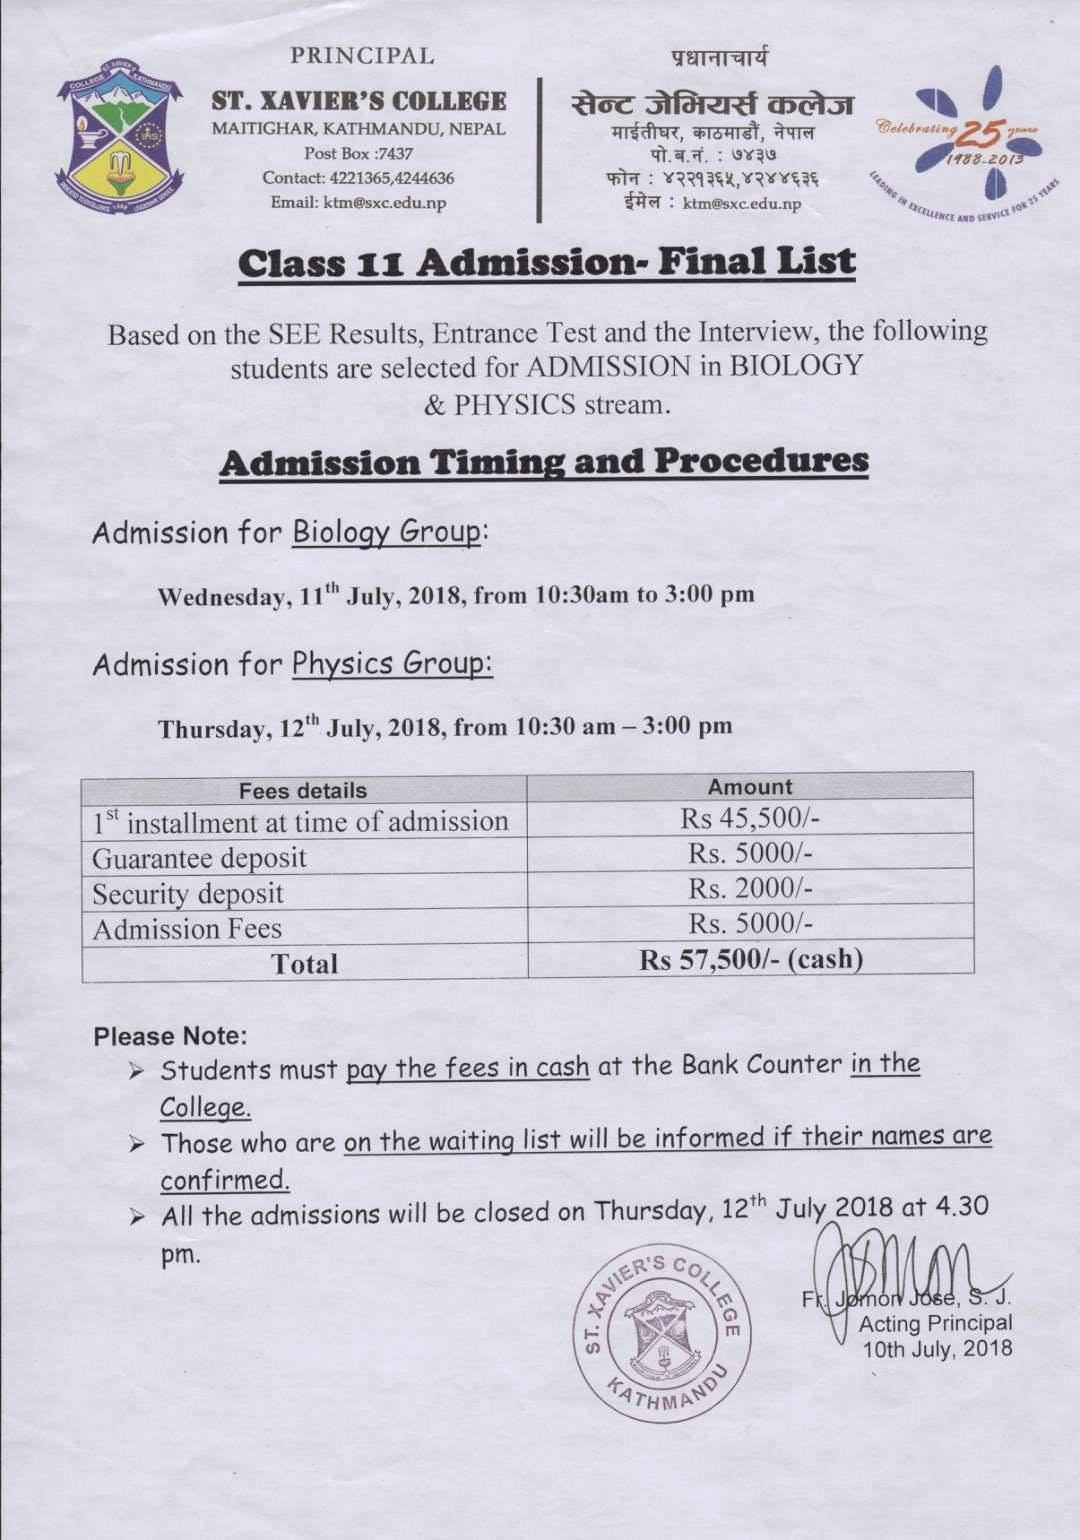 eb89b1d8998e Click Here to View the Grade 11 Entrance Exam Results of St. Xavier s  College